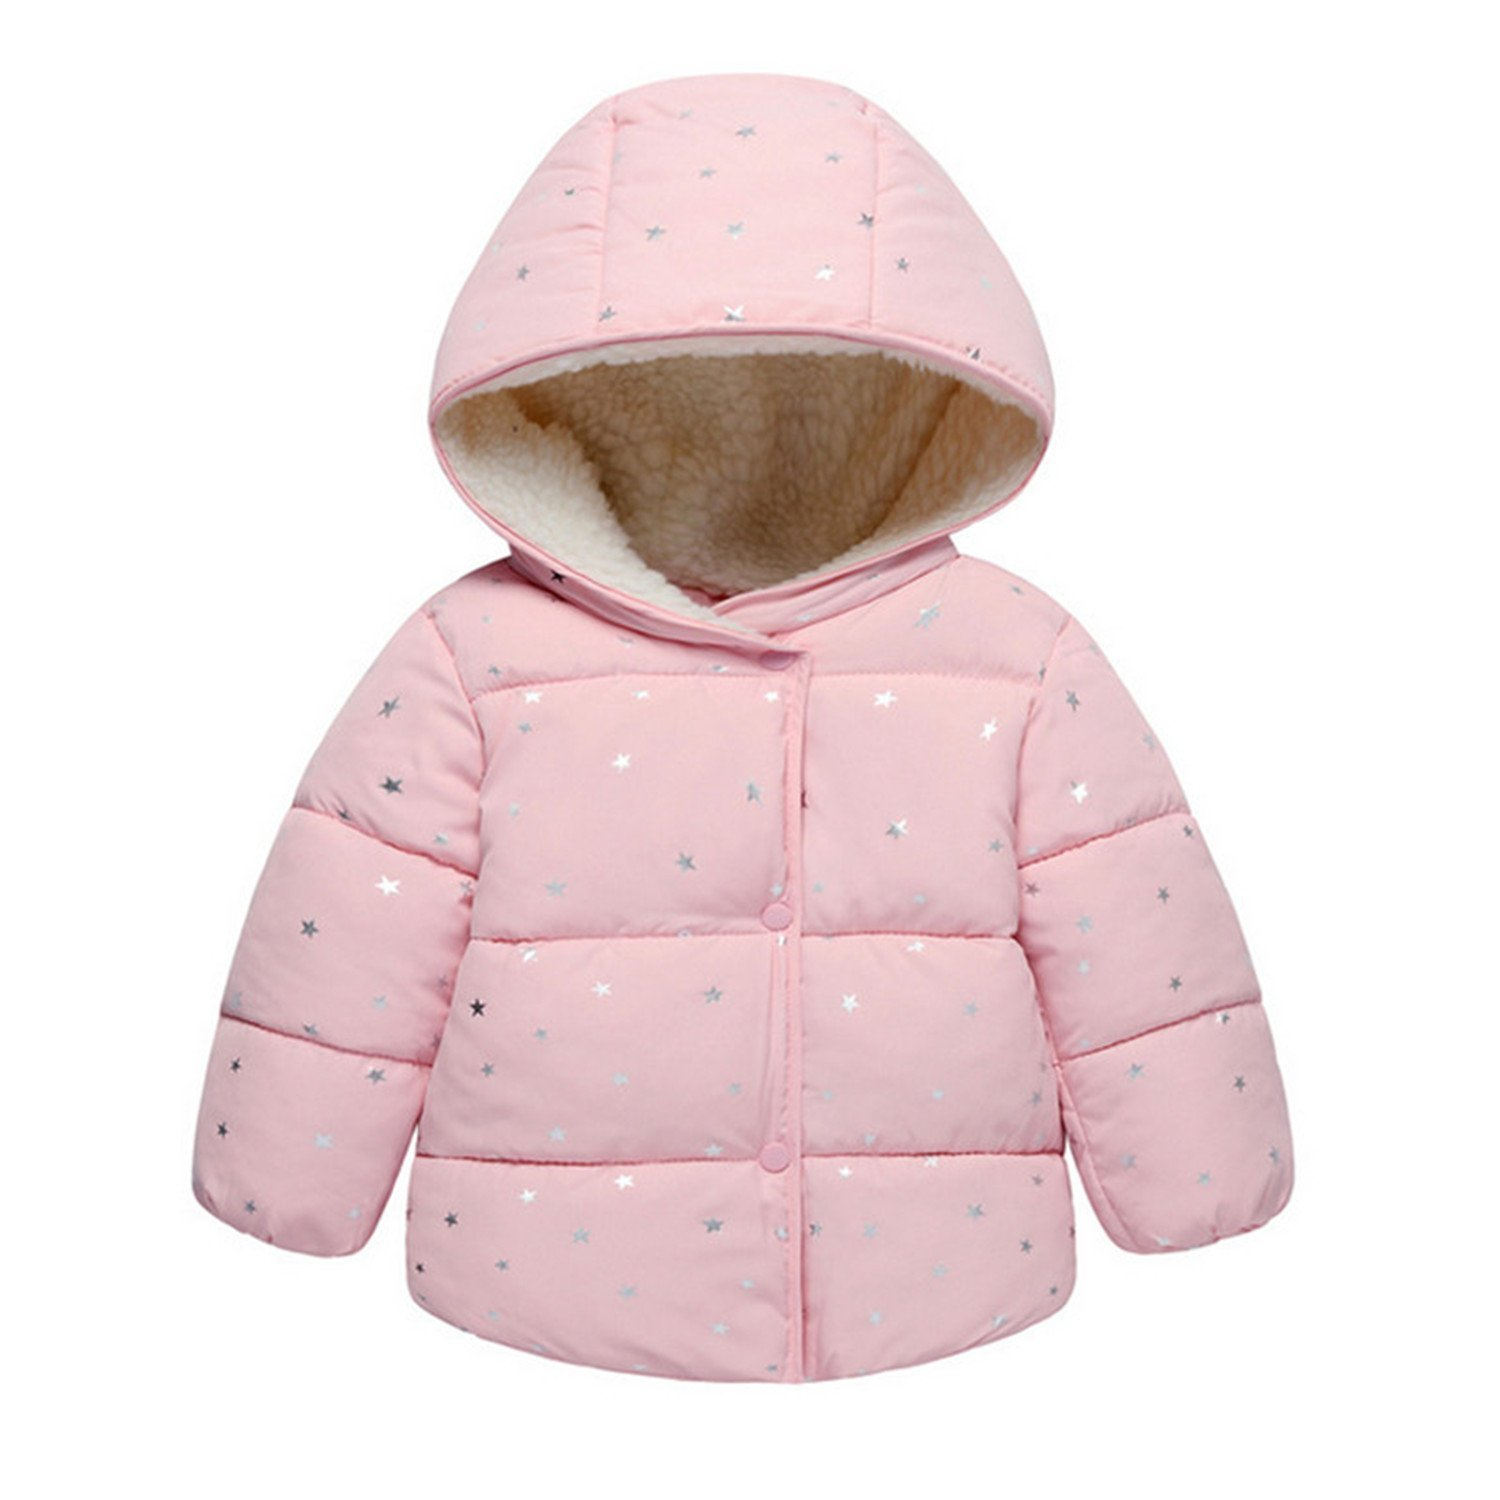 9351f53ba Cocainat Baby Girls Jacket Autumn Winter Jacket for Girls Coat Kids Warm  Hooded Outerwear Children Clothes